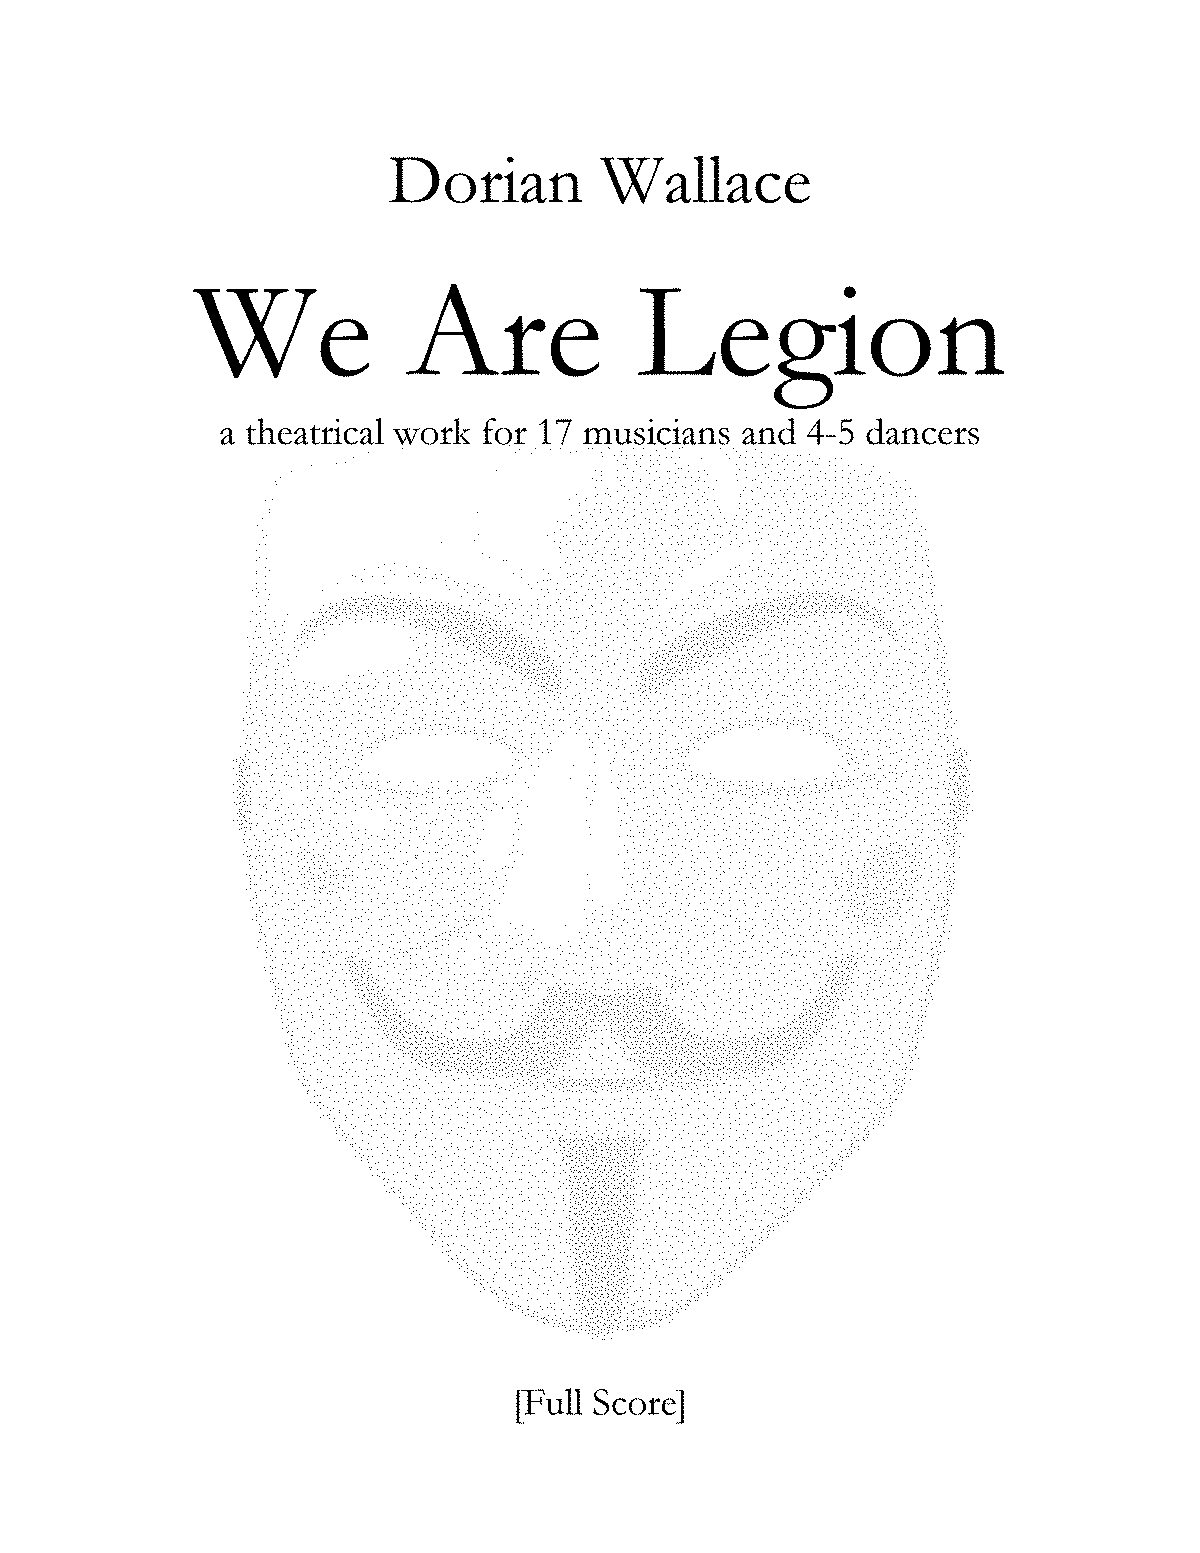 PMLP689520-0. We Are Legion -FULL SCORE- by Dorian Wallace.pdf